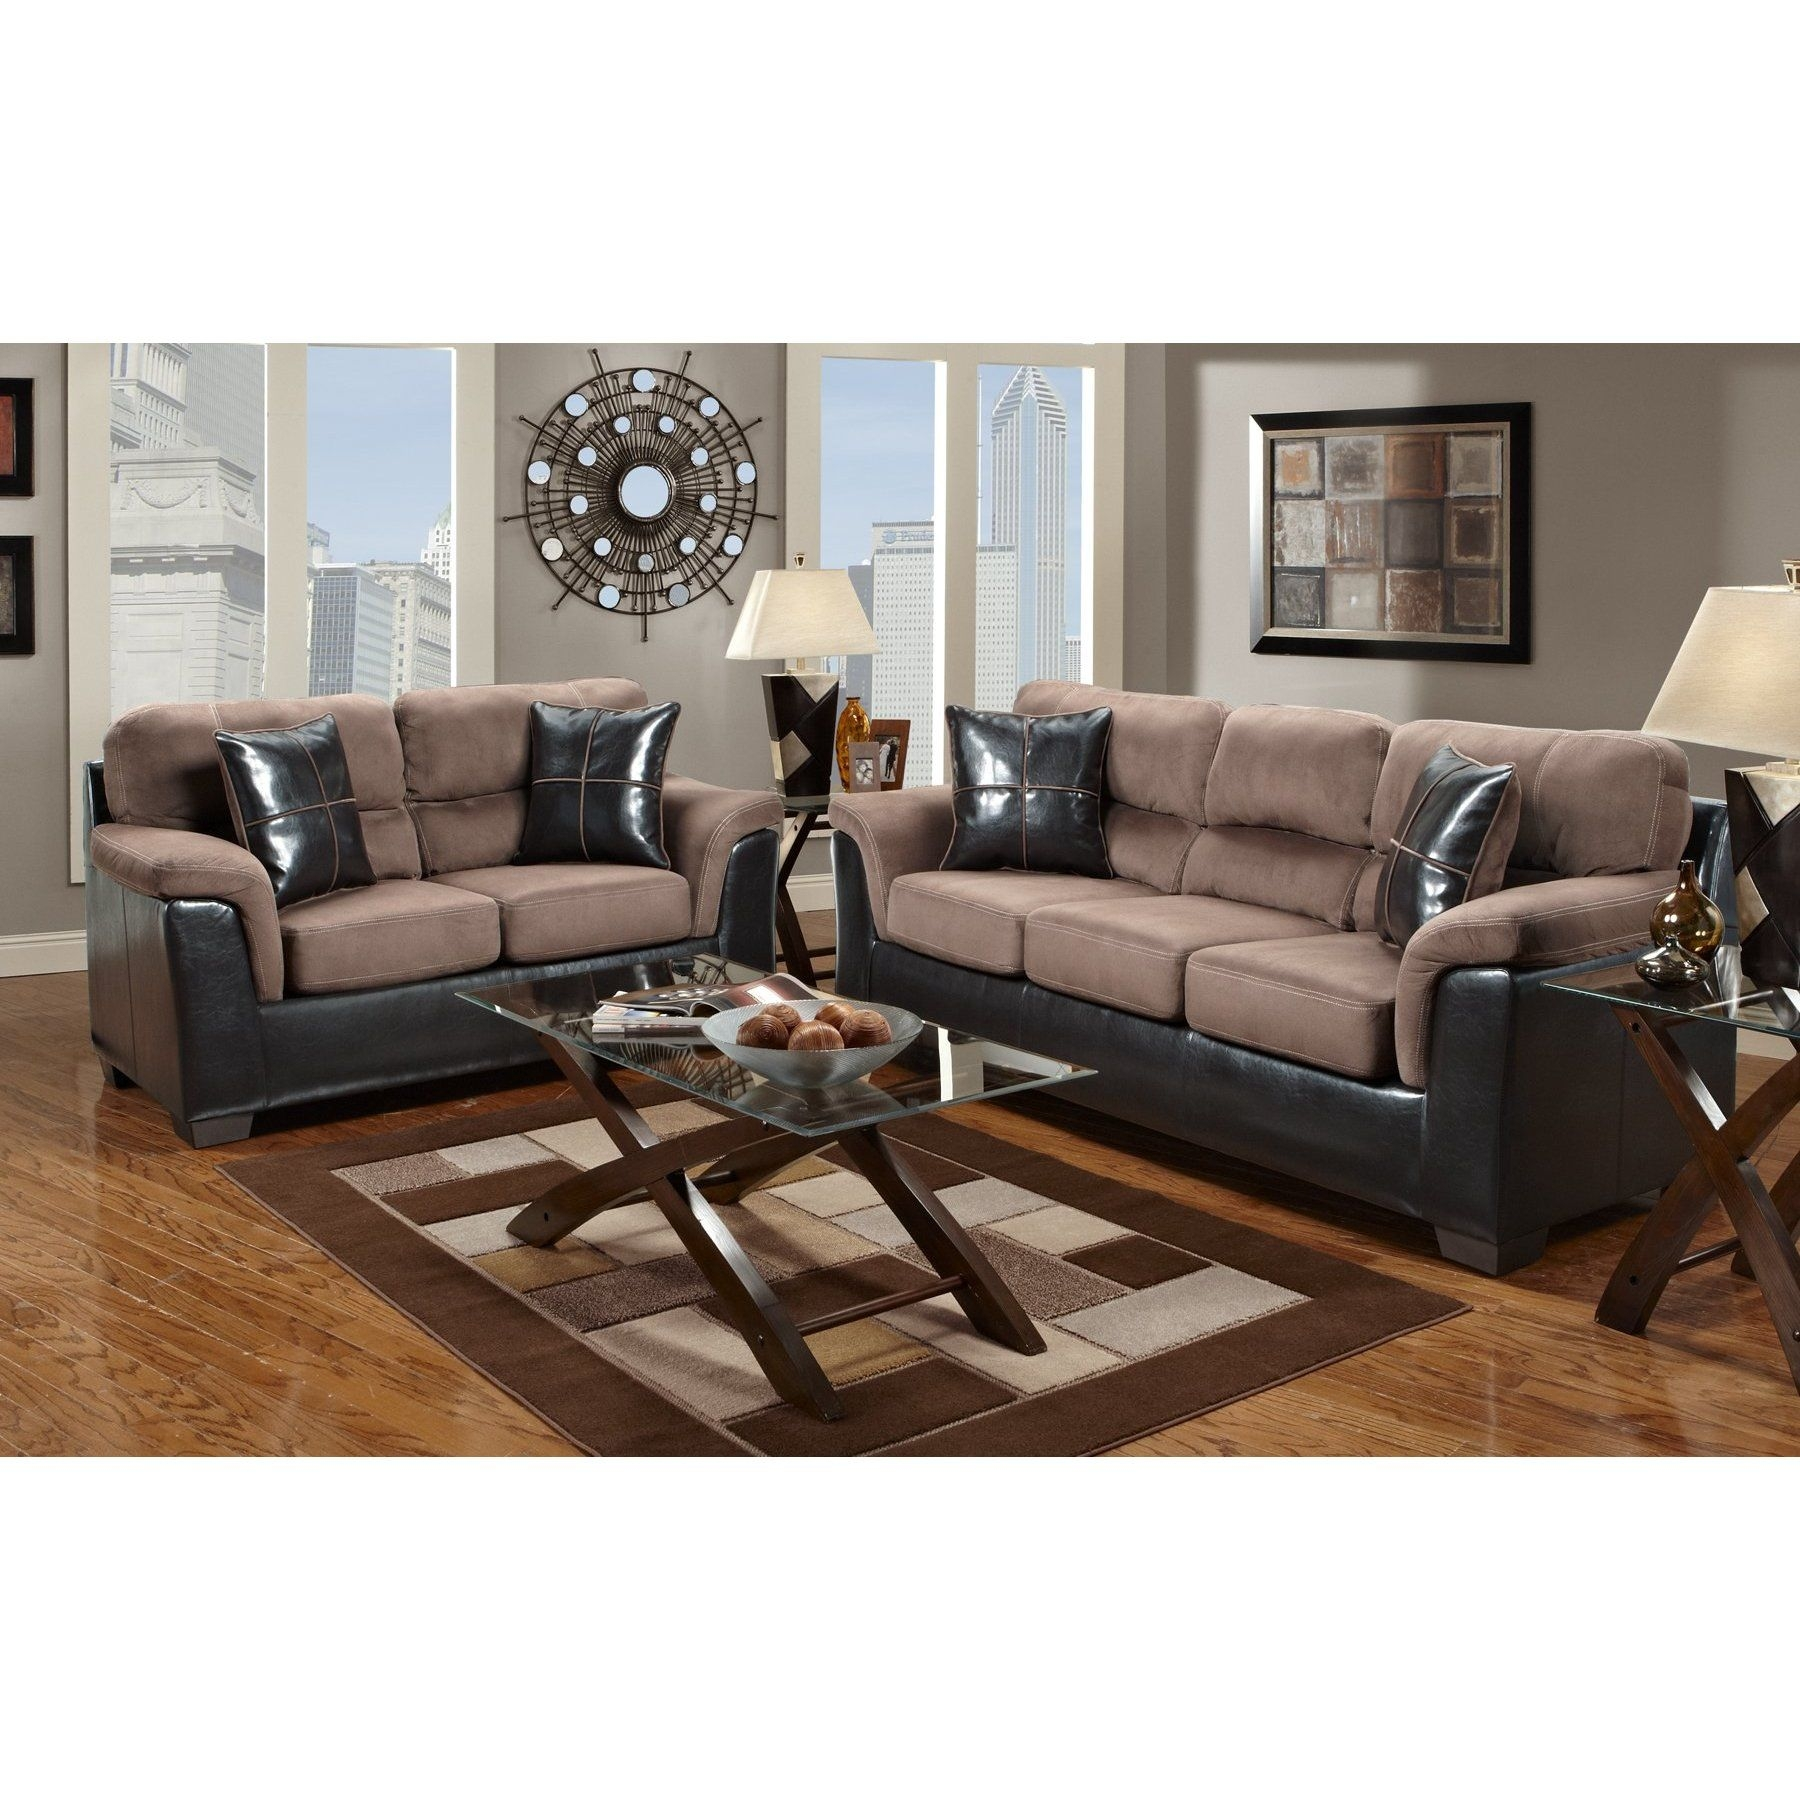 Living Room Interior With Pink Brown Sectional Sofa And Loveseat